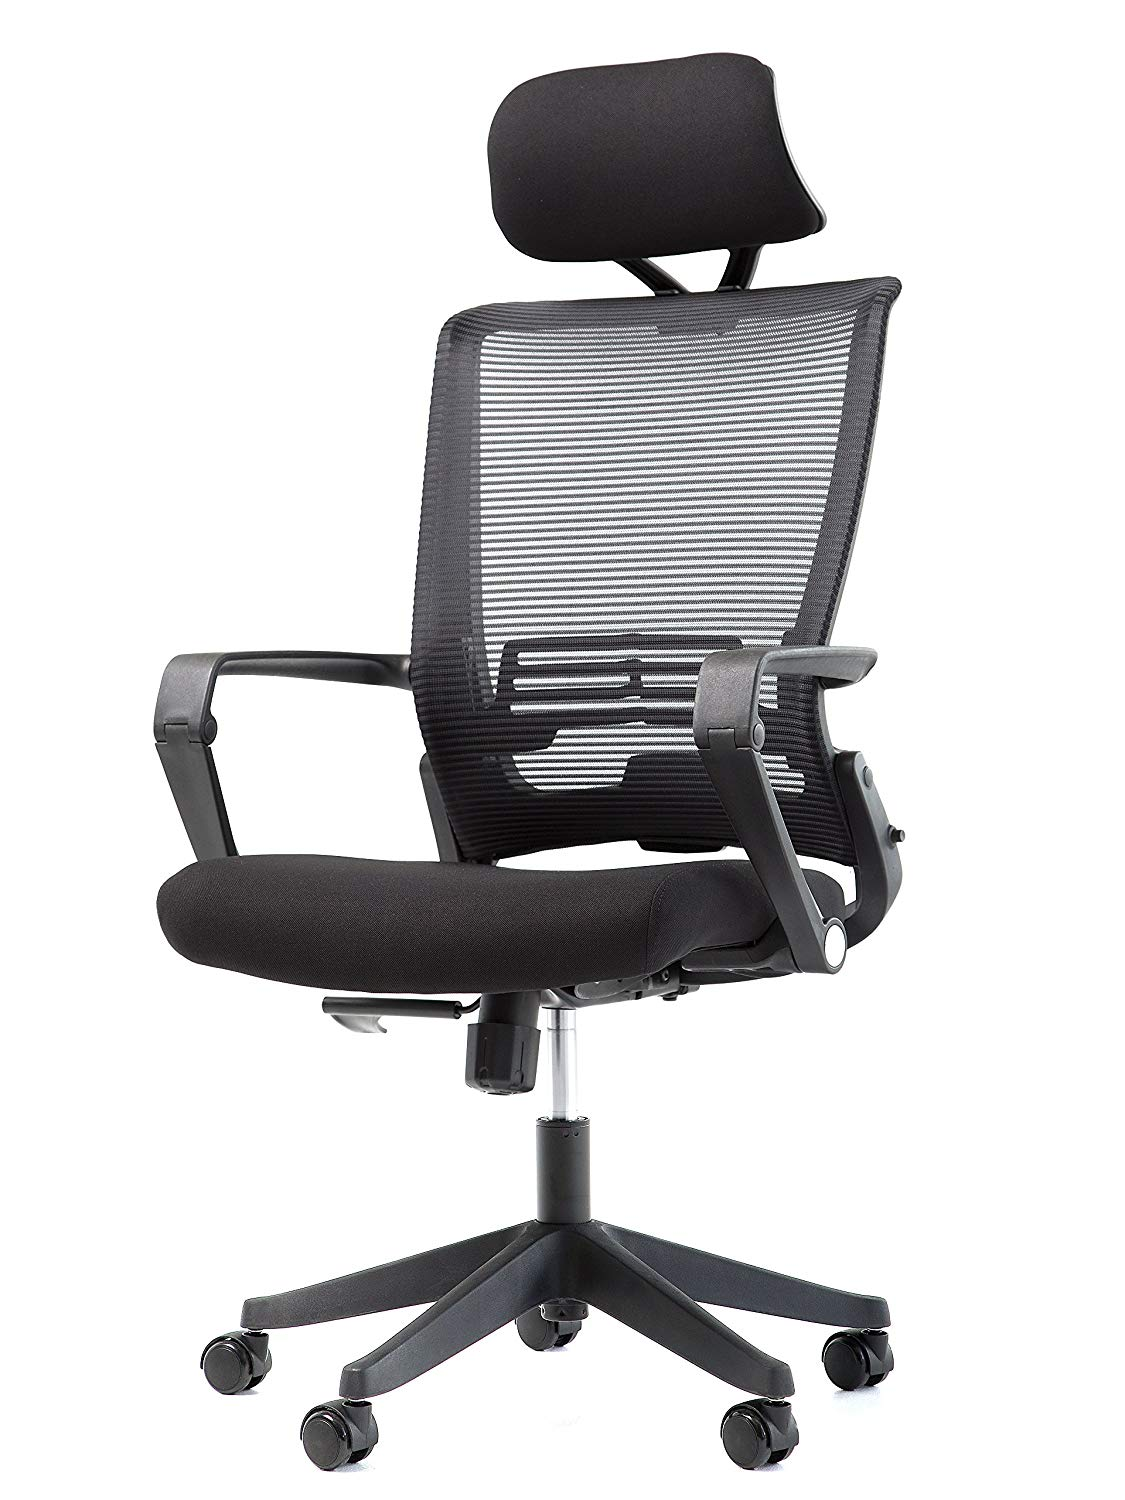 Get Quotations · Office Factor Mesh Back Office Chair With Headrest   Folding Office Chair  Ergonomic Chair For